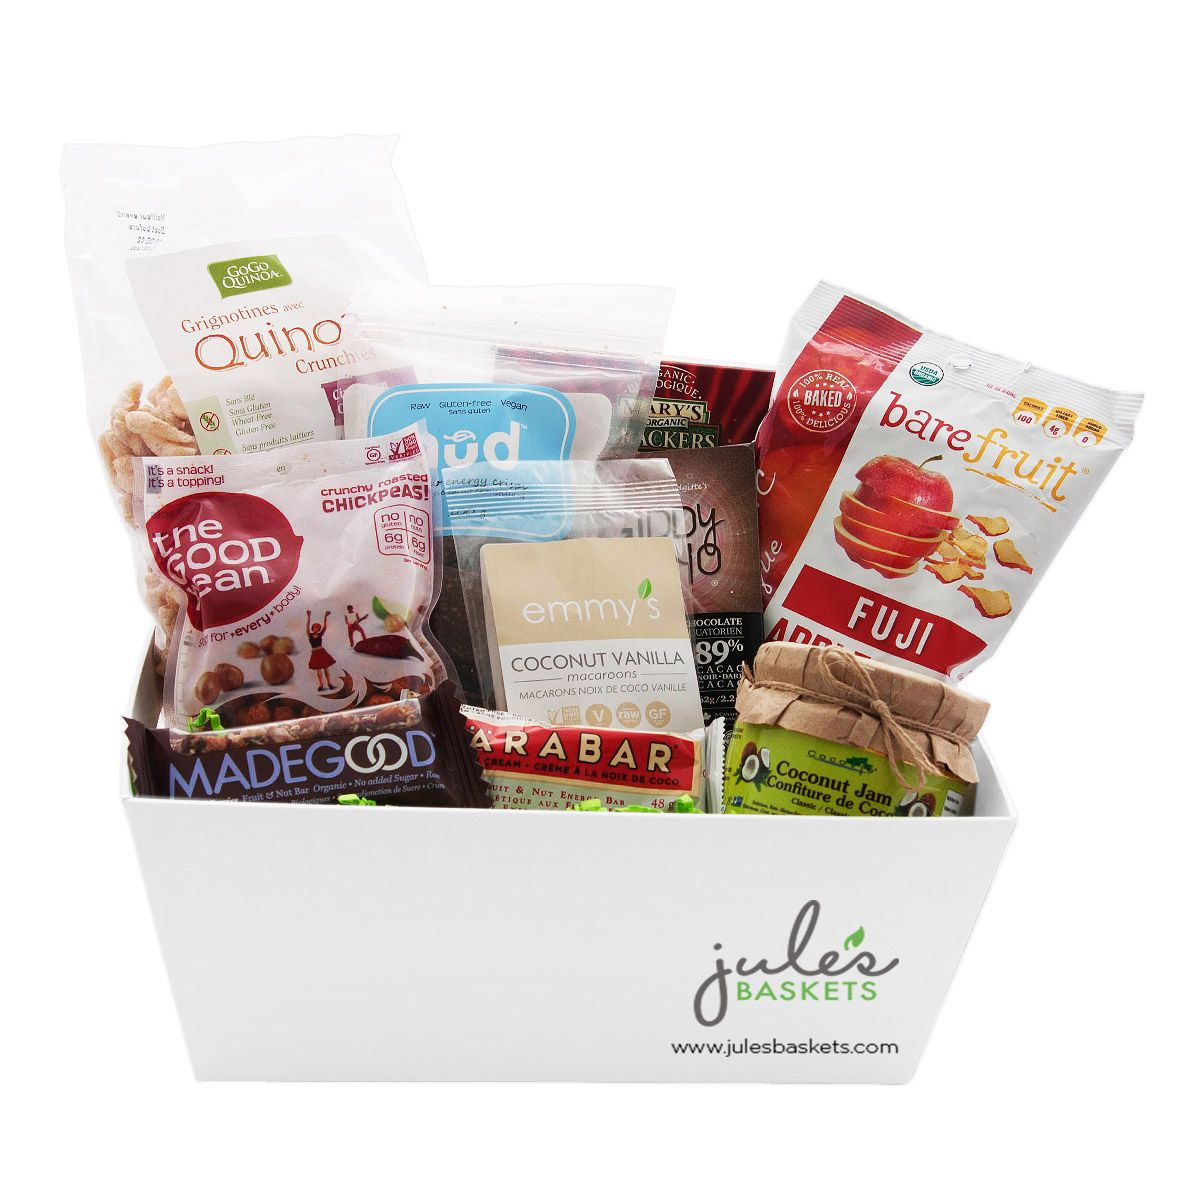 Sweets treats vegan baskets 9799 by jules baskets treats sweets treats vegan baskets 9799 by jules baskets treats sweets organic glutenfreegift negle Image collections